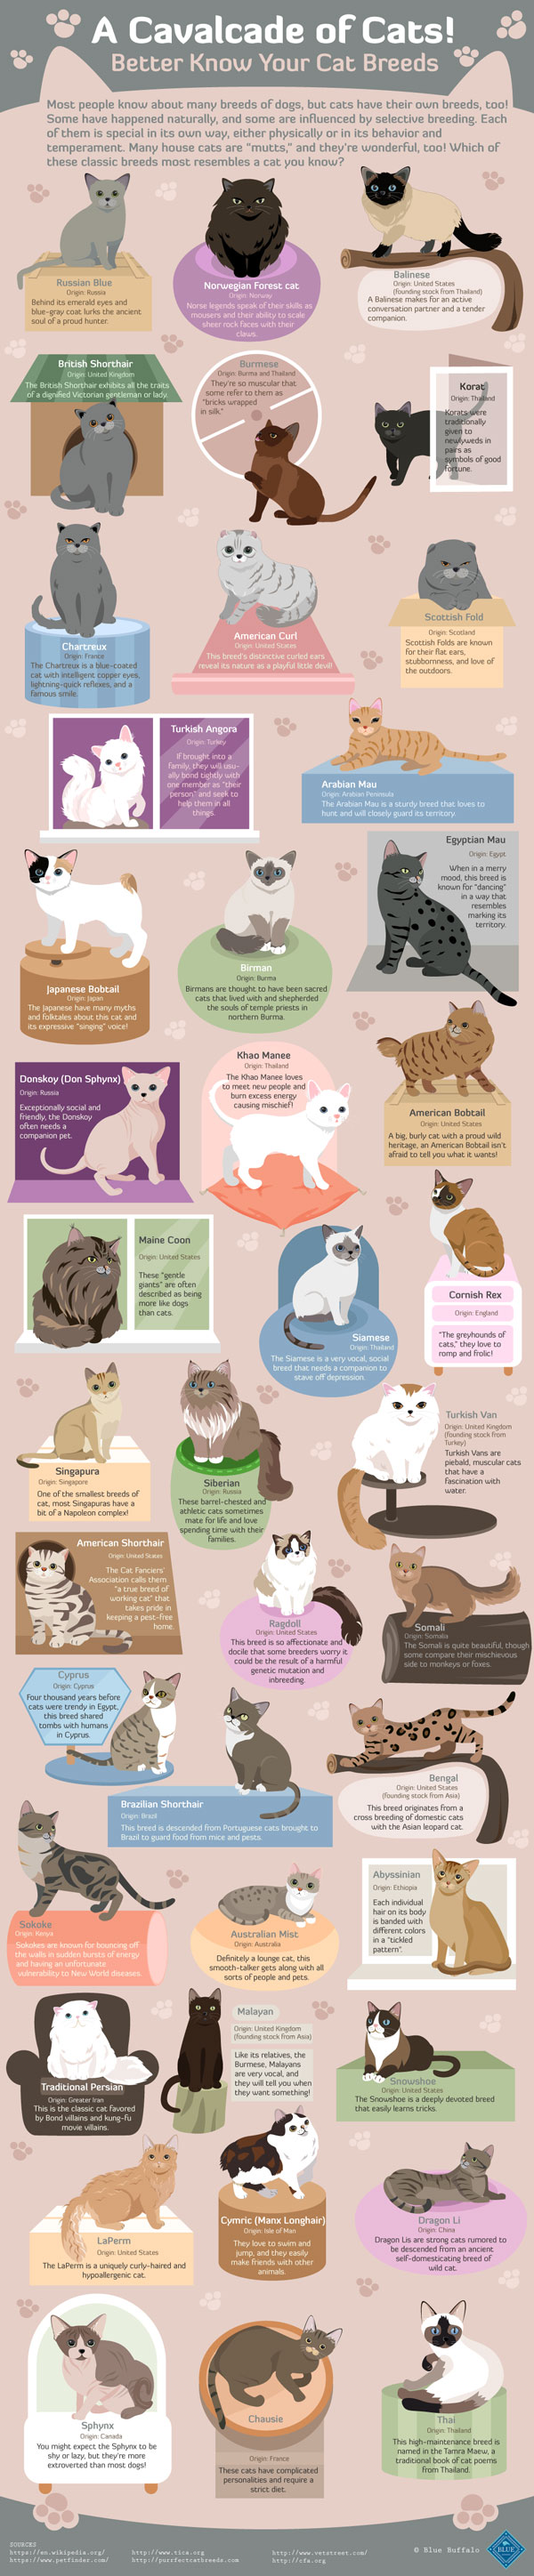 infographic-cavalcade-of-cats